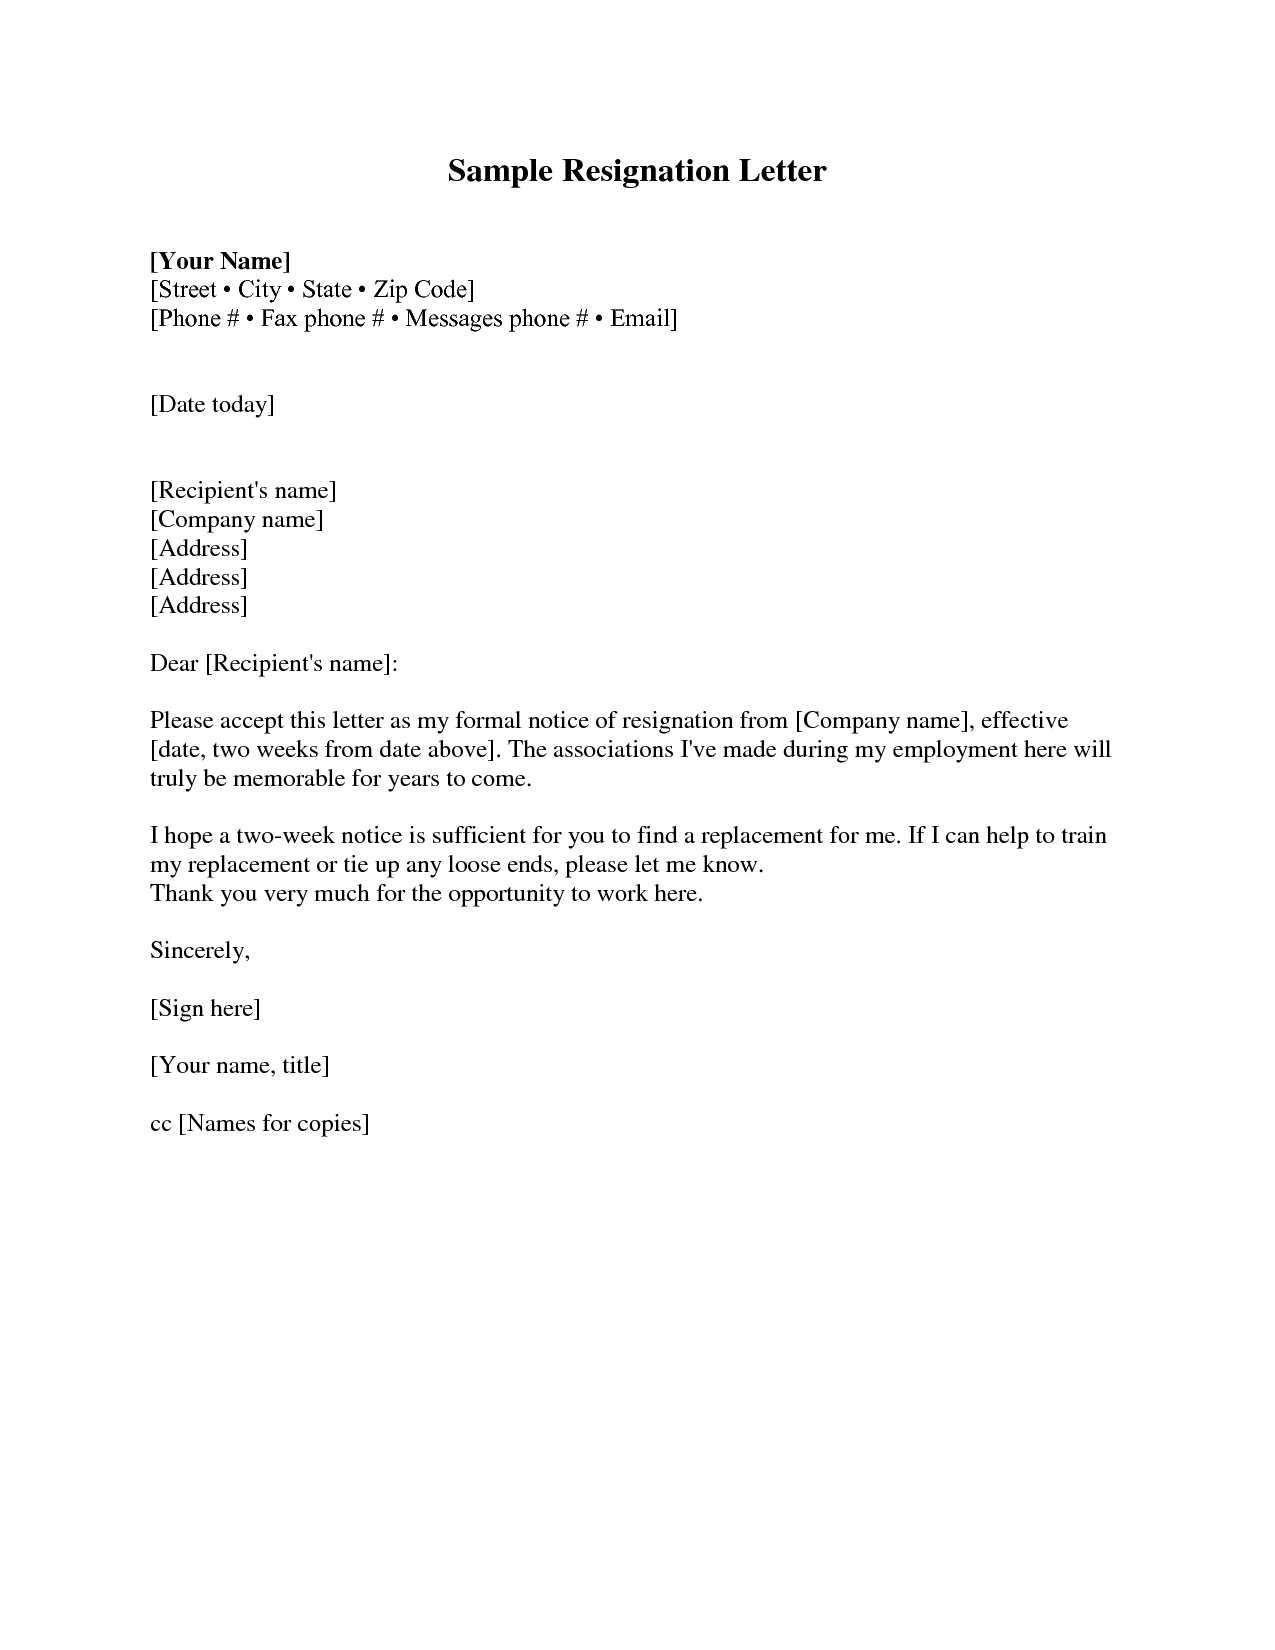 resignation letter sample 2 weeks notice 2 com yup resignation letter sample 2 weeks notice 2 com